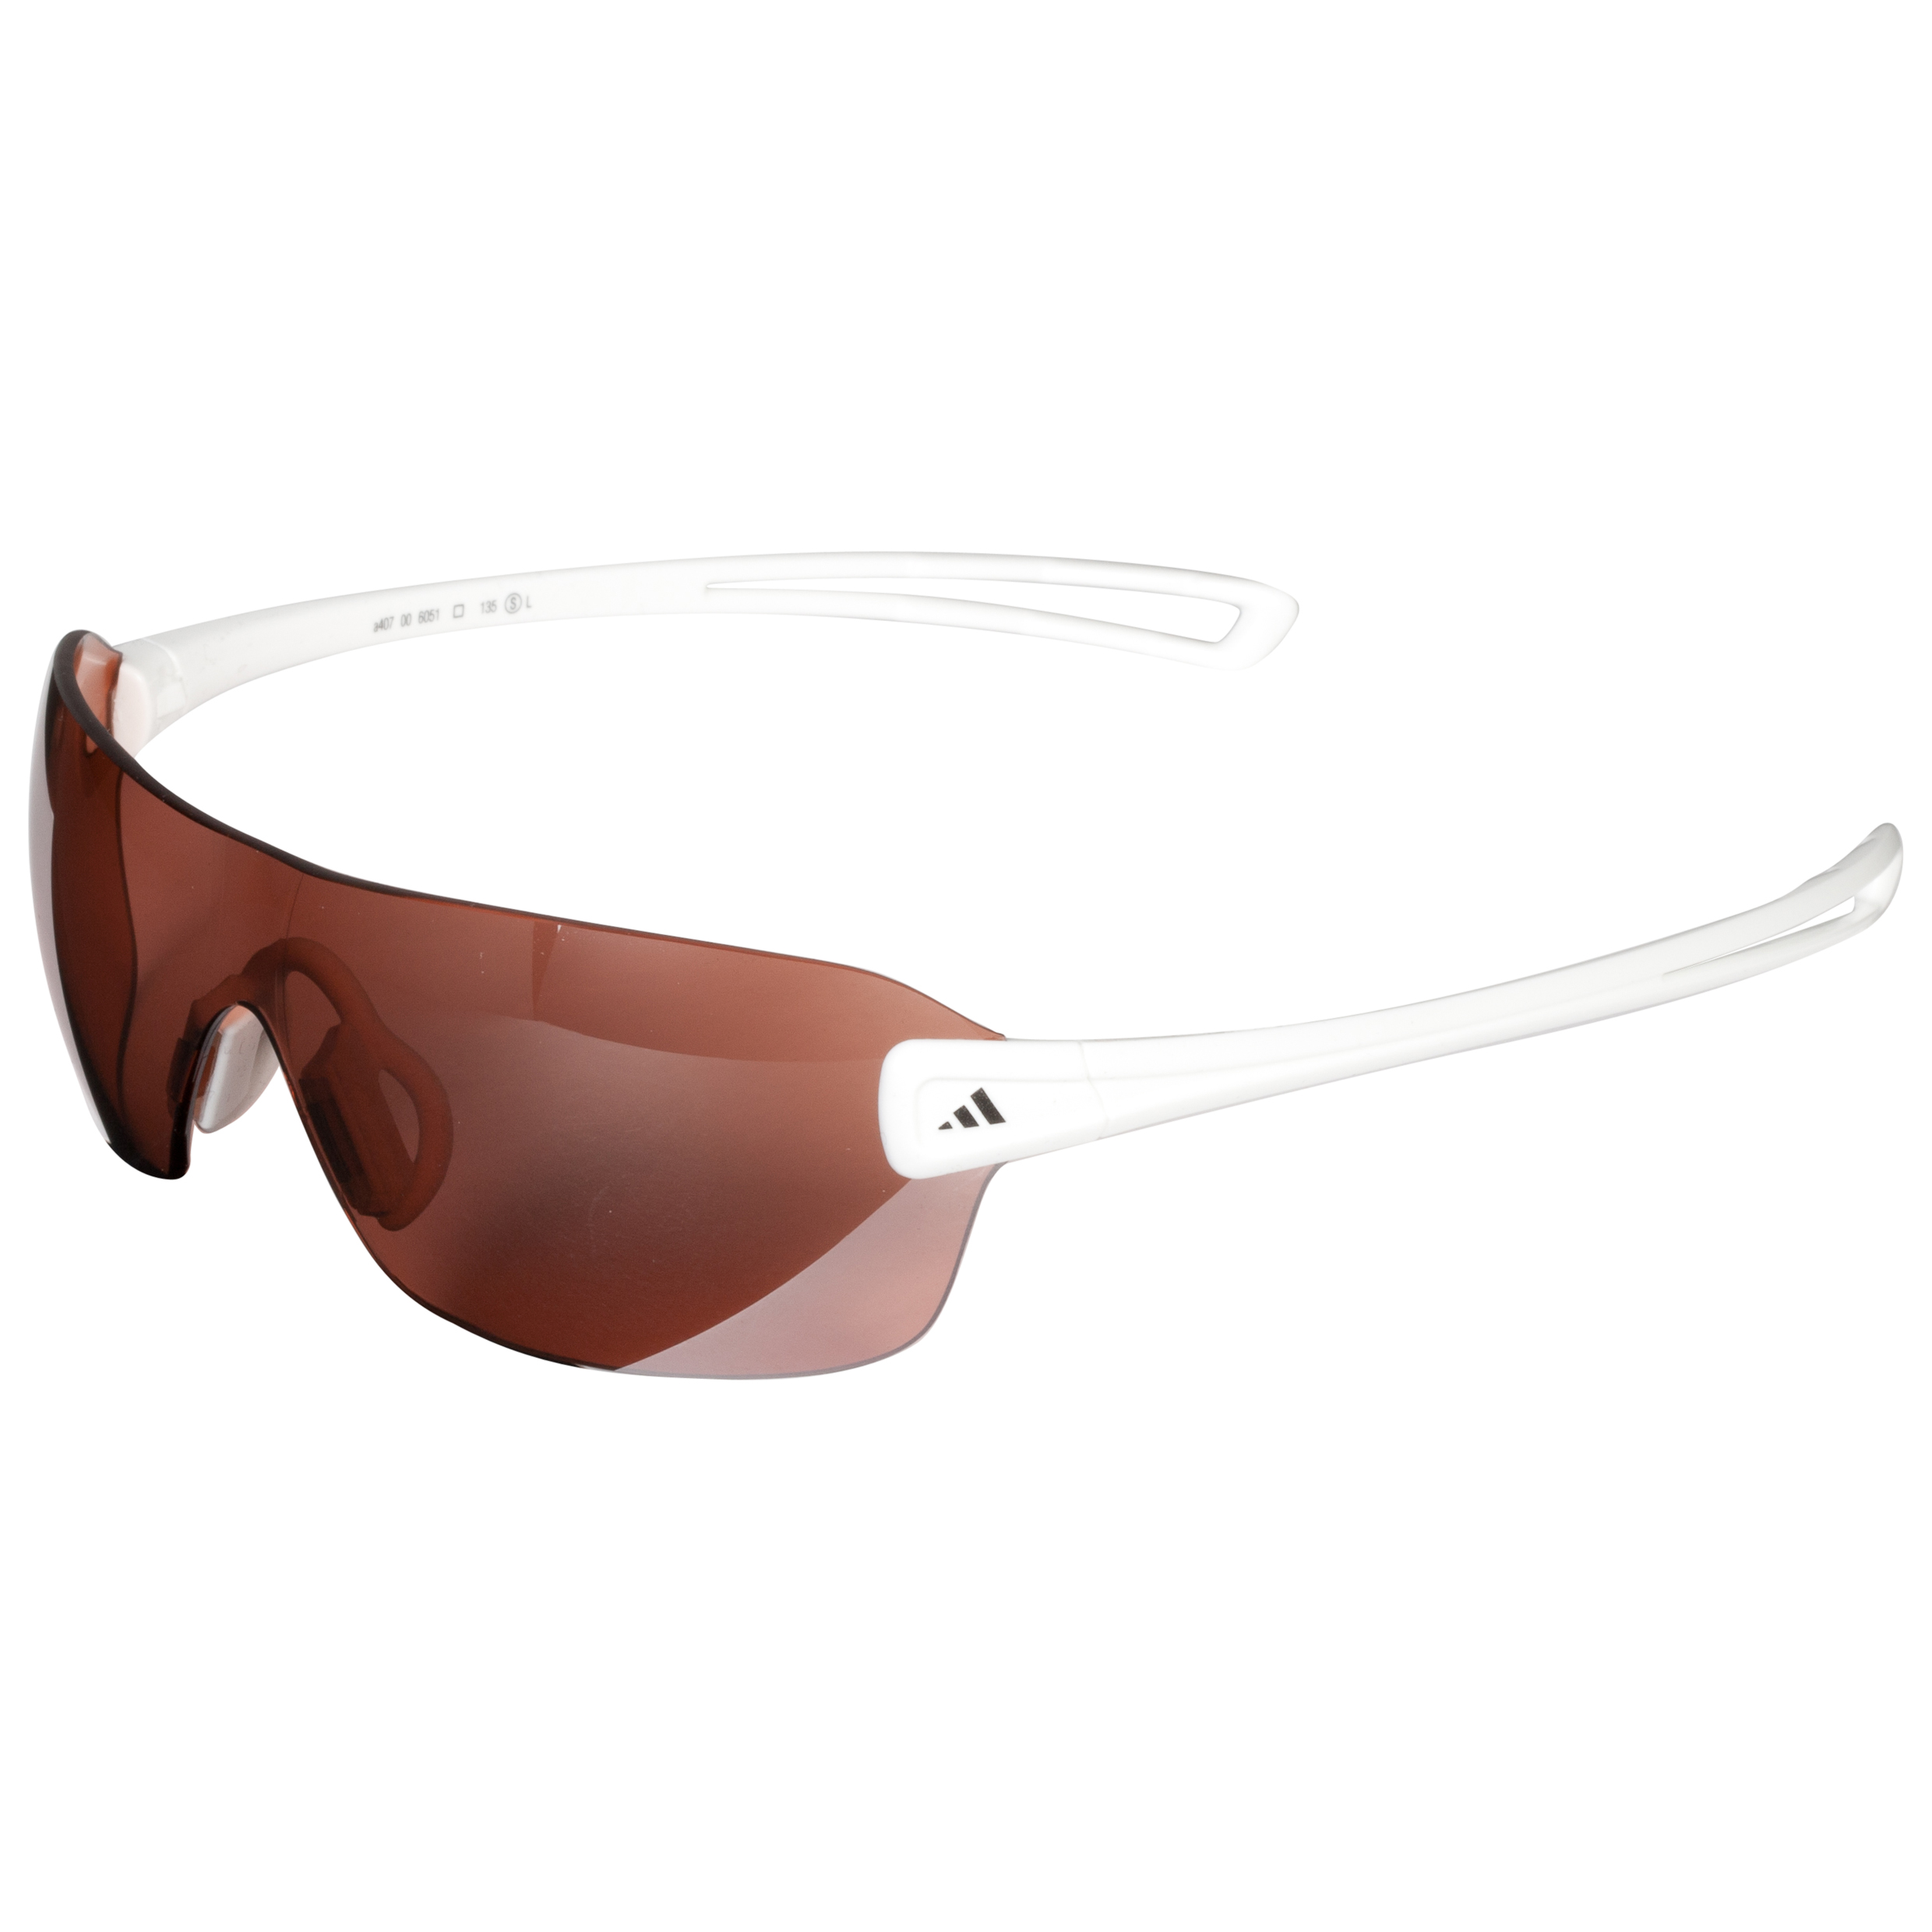 Adidas Duramo Sunglasses - White